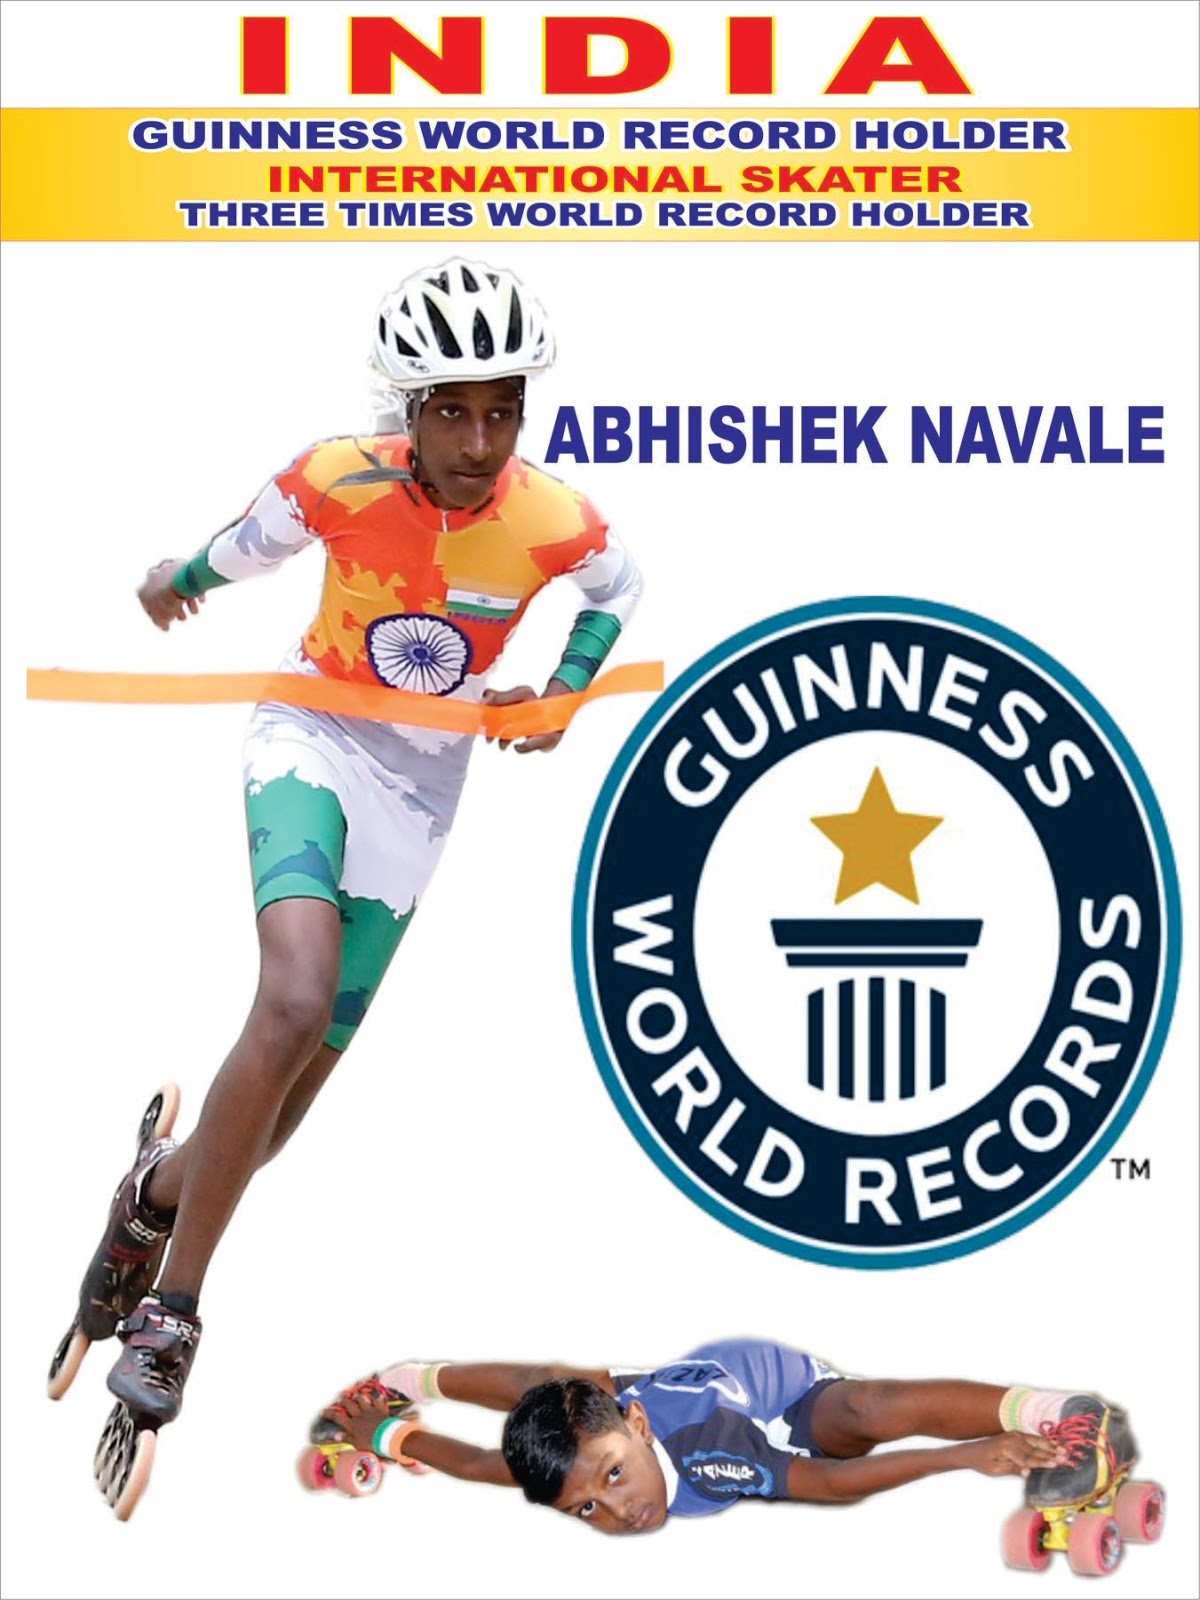 THREE TIMES WORLD RECORD HOLDER: June 2018